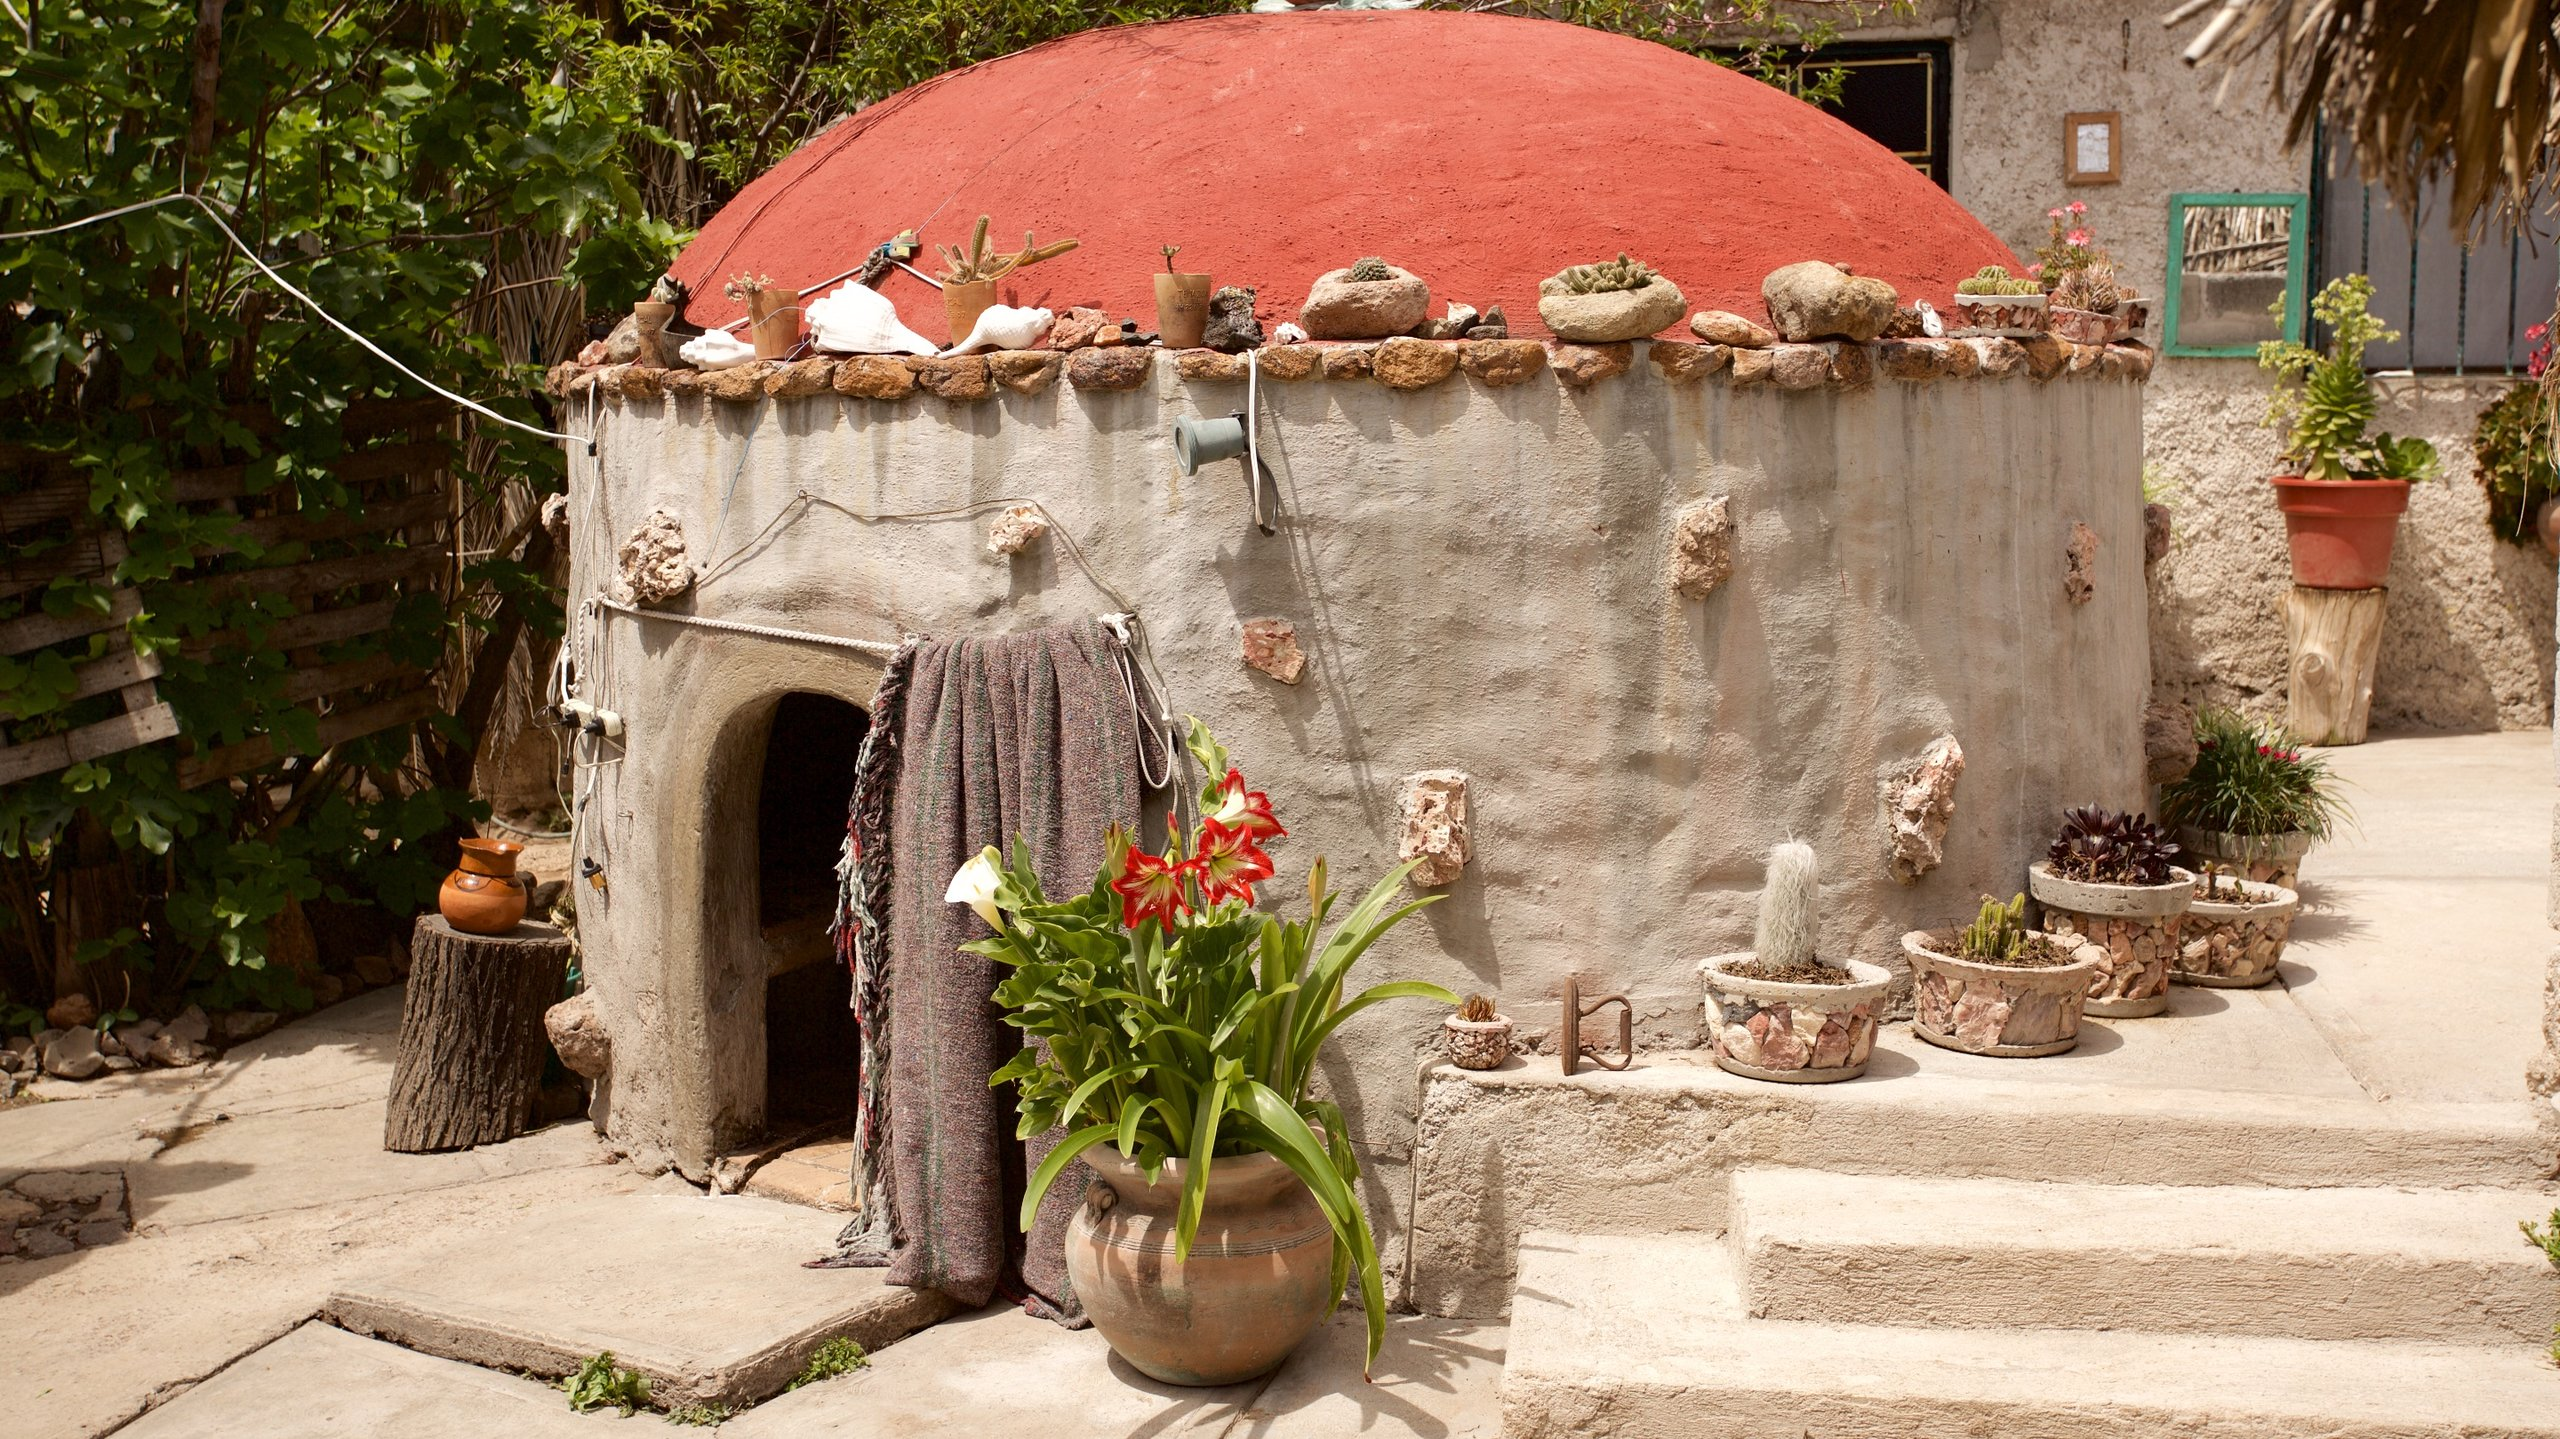 You can take time to visit Temazcal Tonatiu Iquzayampa during your travels to Tequisquiapan. Make time to visit the spas and monuments while you're in the area.